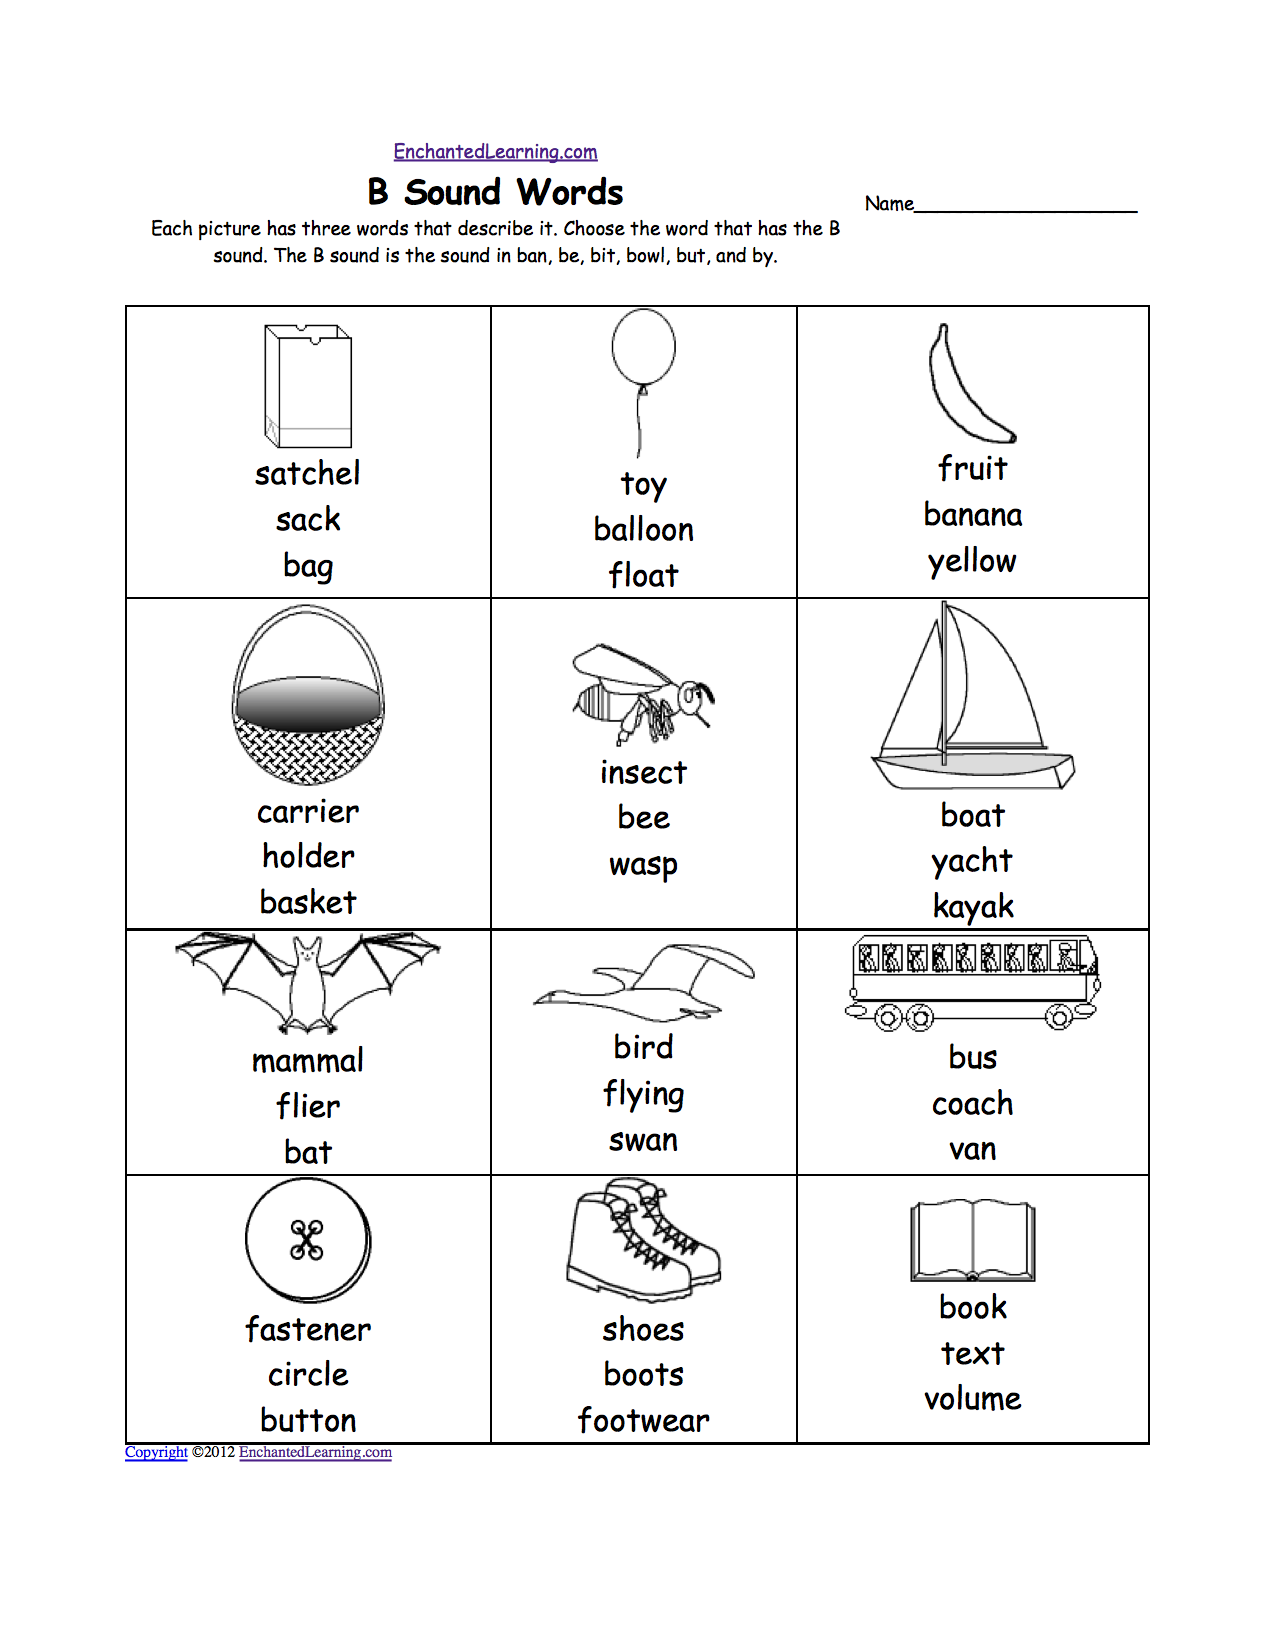 Aldiablosus  Unique Phonics Worksheets Multiple Choice Worksheets To Print  With Exciting Quotbquot Sound Phonics Worksheet Multiple Choice Each Picture Has Three Words That Describe It Choose The Word That Has A Quotbquot Sound The Quotbquot Sound Is The Sound  With Charming Bodies Of Water Worksheets Also Seventh Grade English Worksheets In Addition Free Kinder Worksheets And Spanish Ar Verbs Worksheet As Well As Music Class Worksheets Additionally Solving Equations And Formulas Worksheet From Enchantedlearningcom With Aldiablosus  Exciting Phonics Worksheets Multiple Choice Worksheets To Print  With Charming Quotbquot Sound Phonics Worksheet Multiple Choice Each Picture Has Three Words That Describe It Choose The Word That Has A Quotbquot Sound The Quotbquot Sound Is The Sound  And Unique Bodies Of Water Worksheets Also Seventh Grade English Worksheets In Addition Free Kinder Worksheets From Enchantedlearningcom